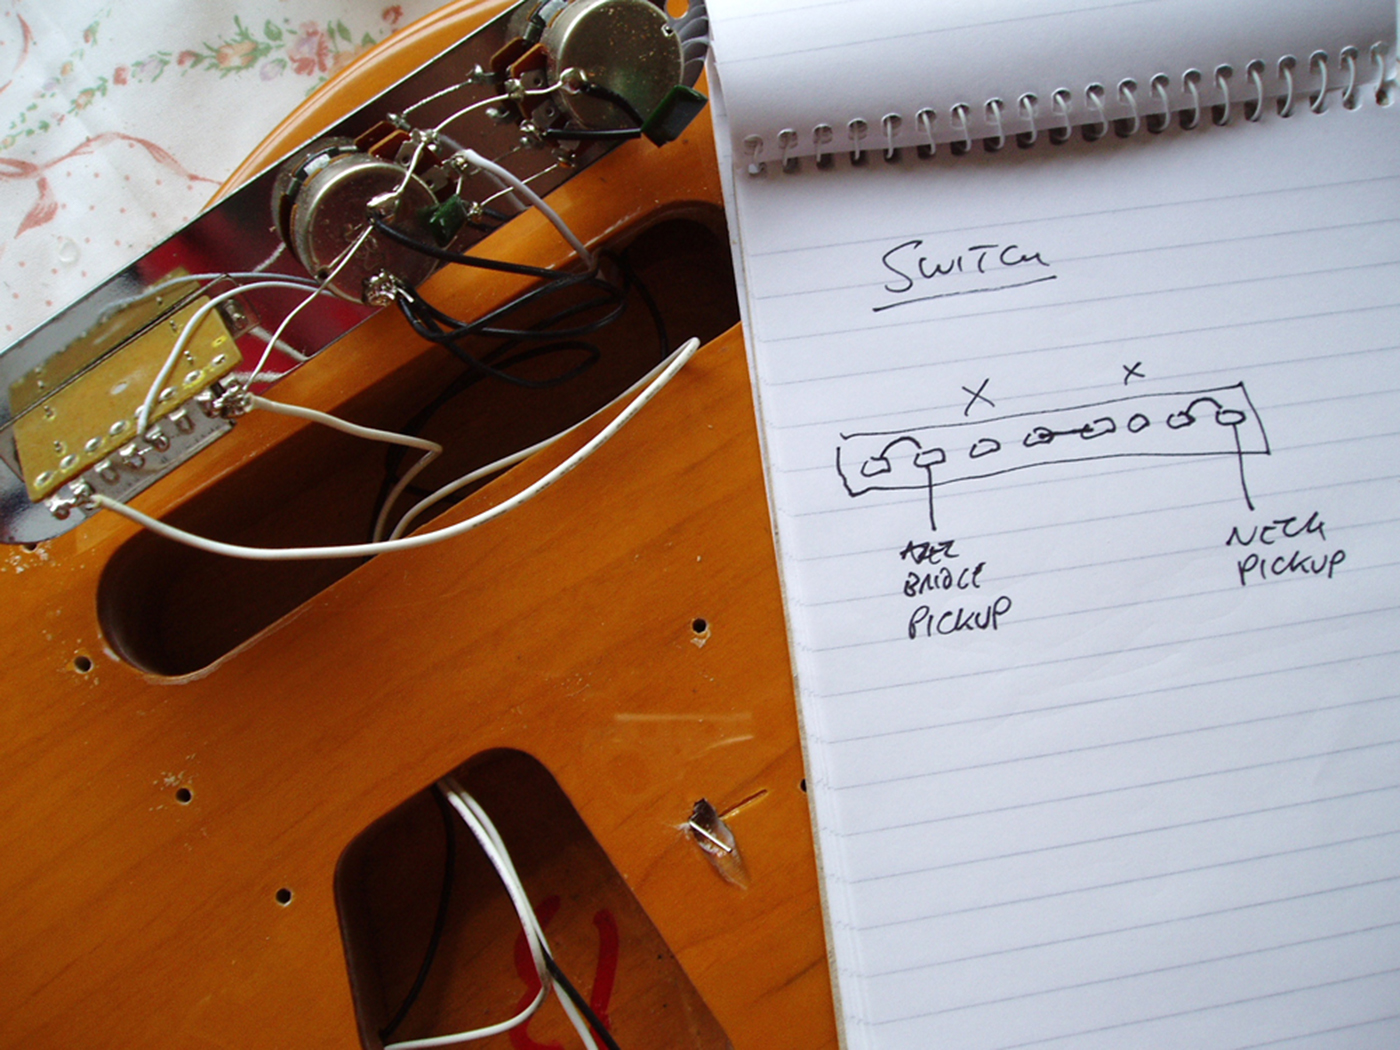 Diy Workshop Squier Telecaster Upgrades All Things Wiring Diagram Further Standard Strat On When You Strip Out The Electronics From A Guitar Its Advisable To Make Notes And Diagrams Before Start It Really Helps Youre Trying Put